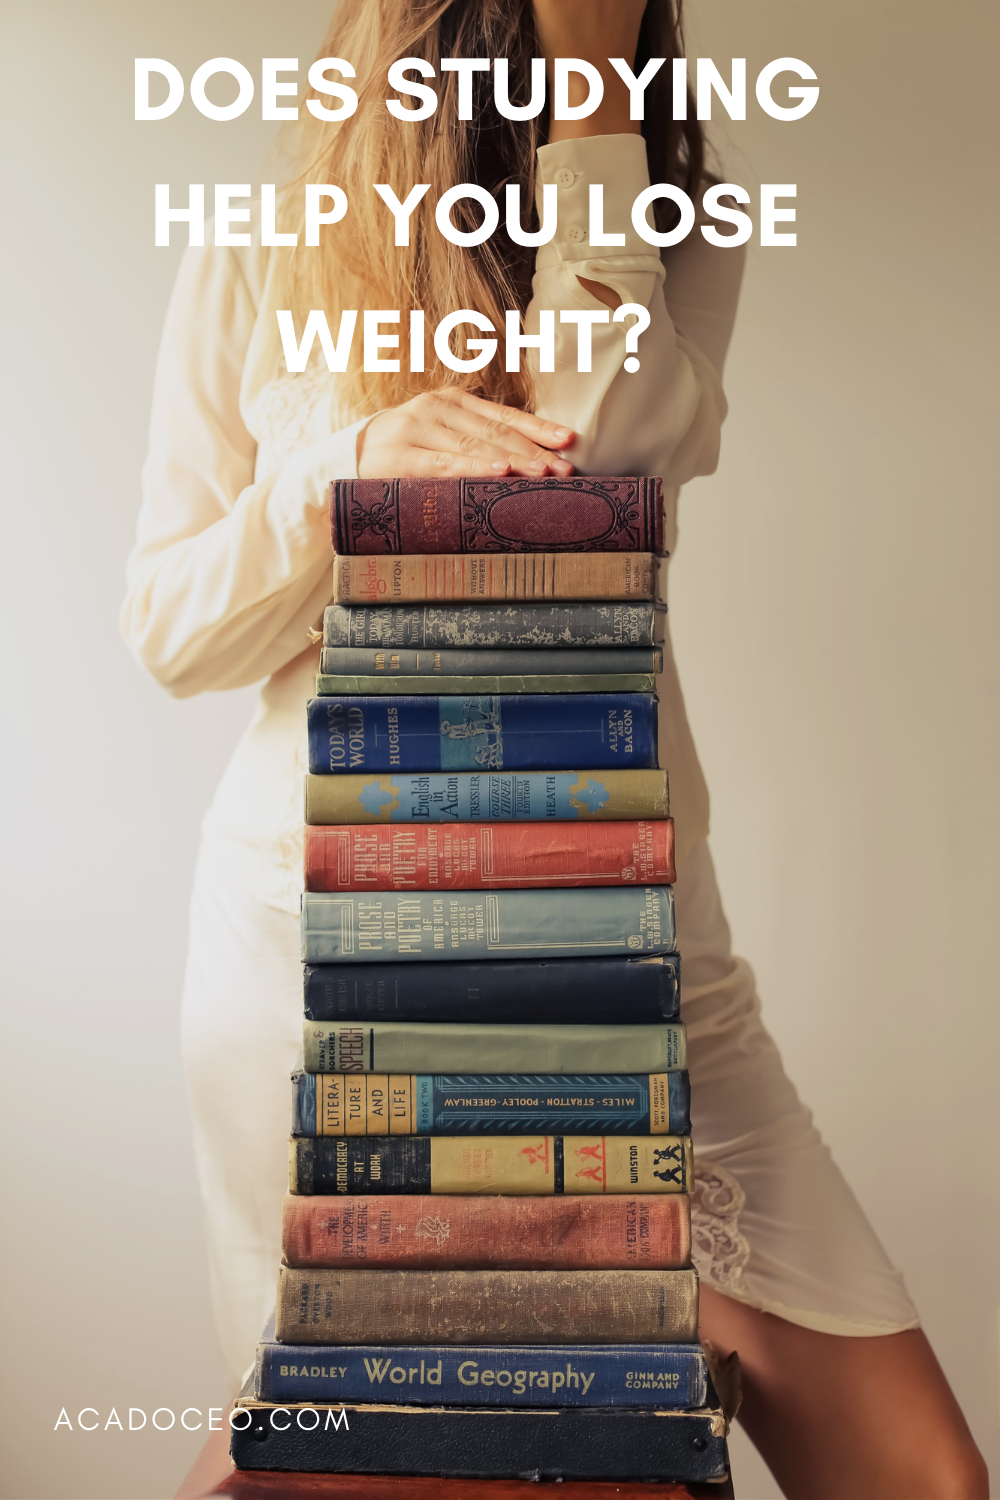 Does Studying Help you Lose Weight?